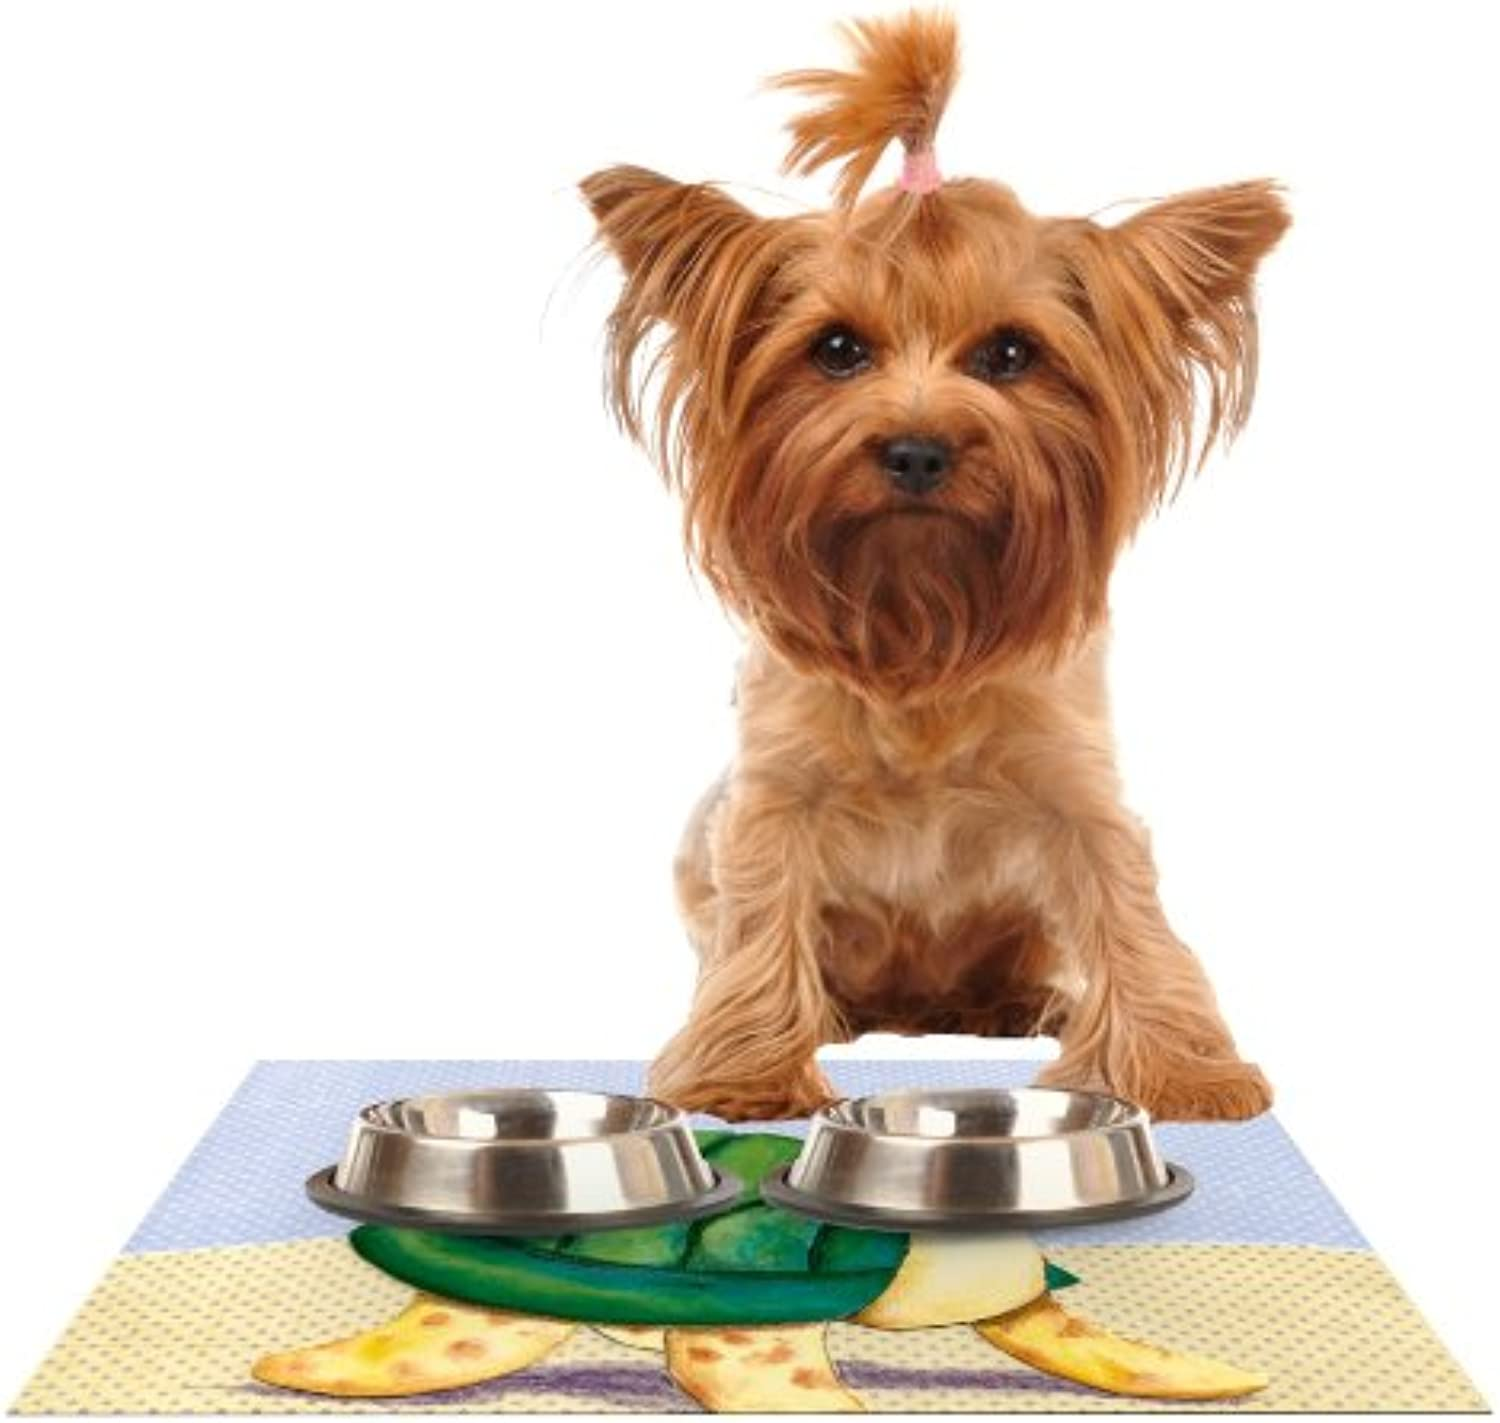 Kess InHouse Padgett Mason Slow and Steady  Feeding Mat for Pet Bowl, 18 by 13Inch